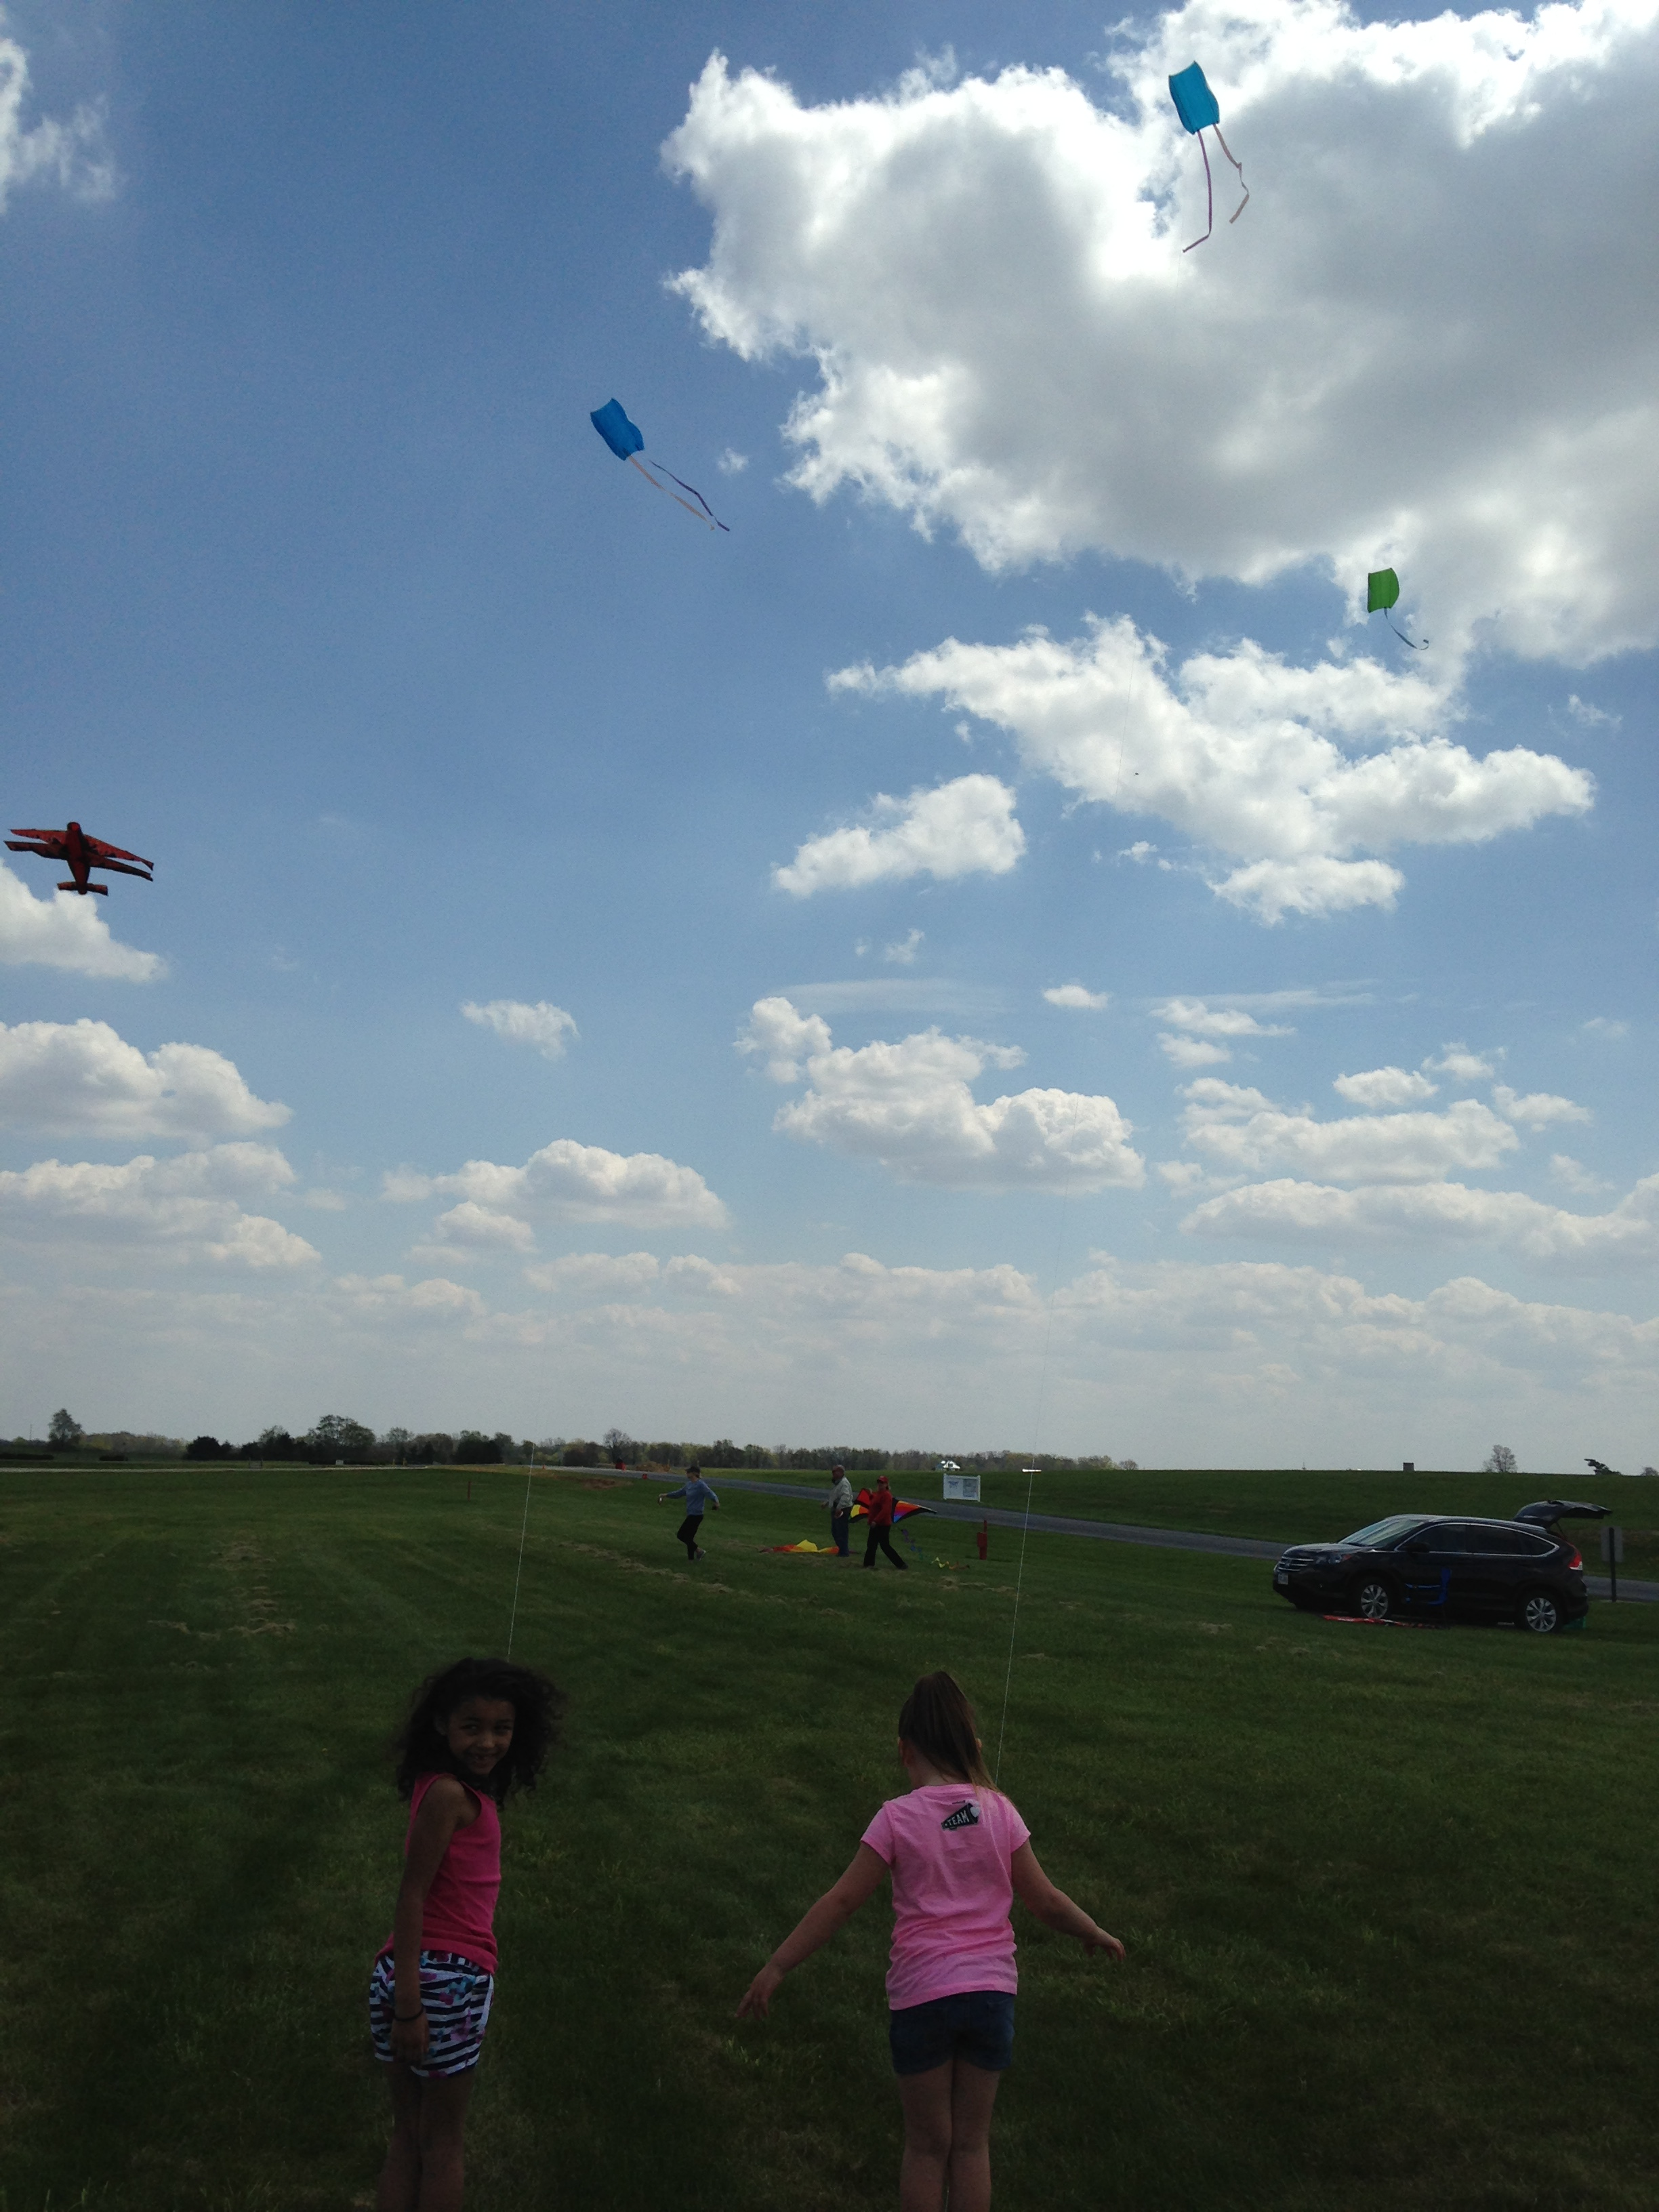 Children fly kites at the Hoosier Kitefliers Society annual Ansel Toney Memorial Kite Fly, Muncie Indiana, May, 2015